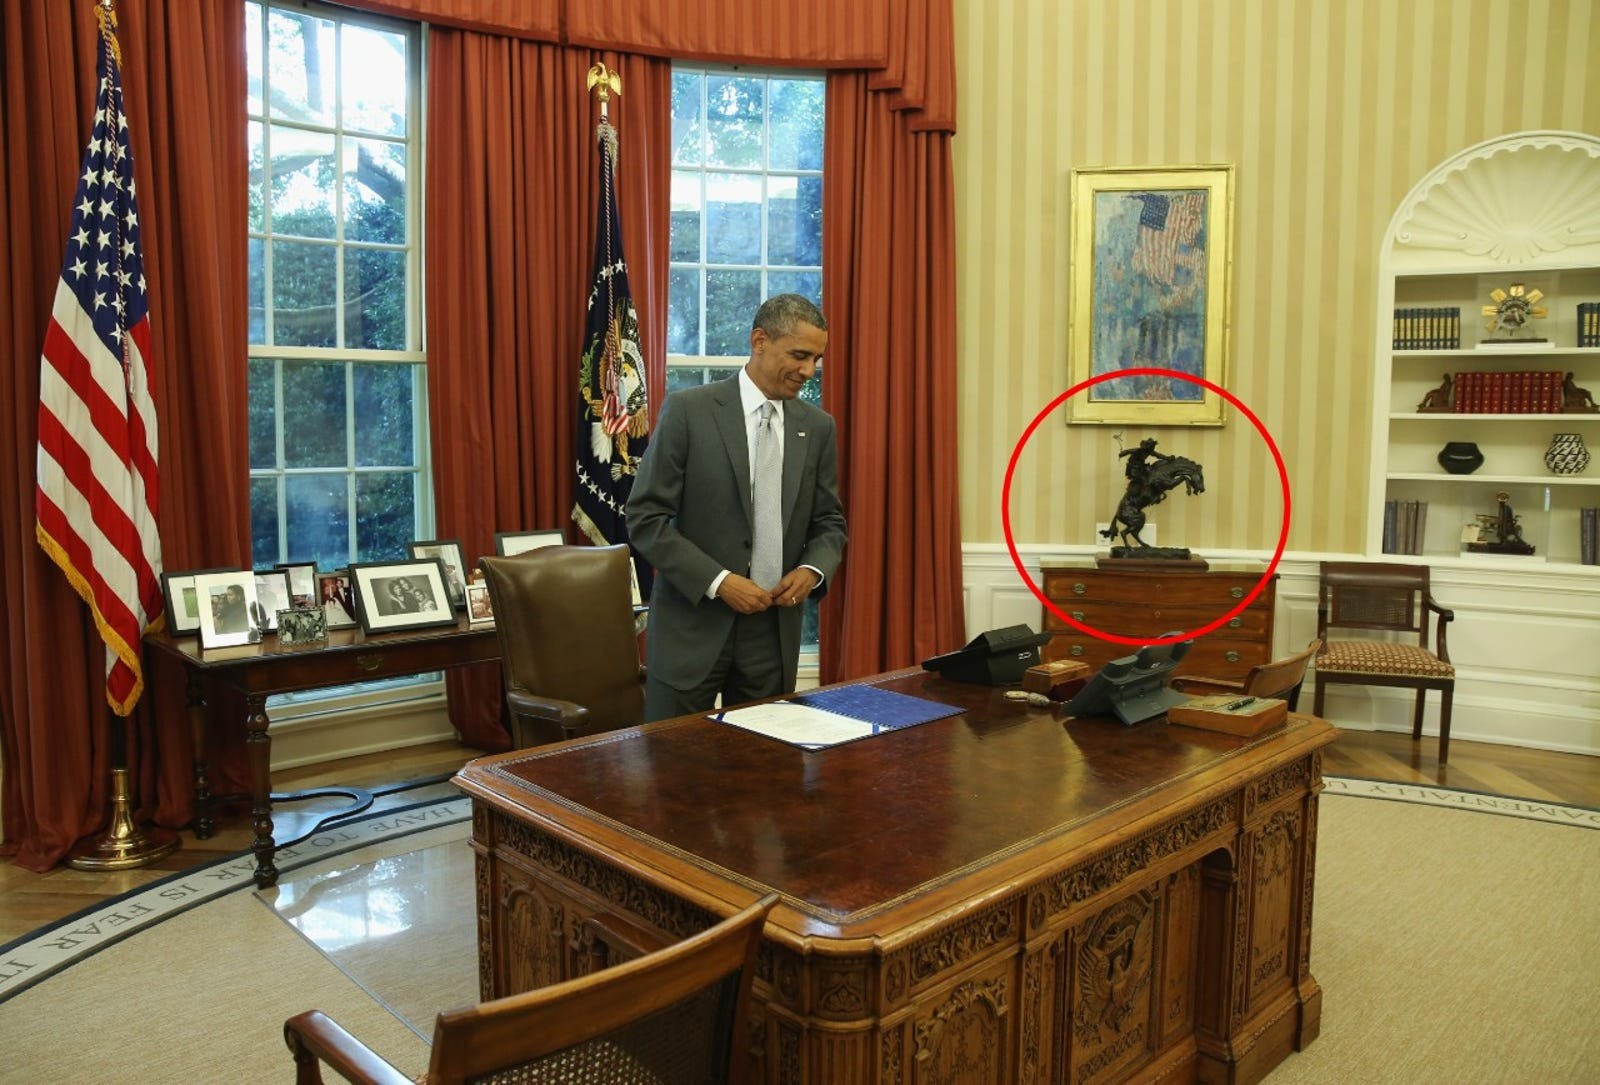 President Barack Obama stands at his desk on August 4, 2014 in Washington, DC. with the Bronco Buster sculpture highlighted in the background